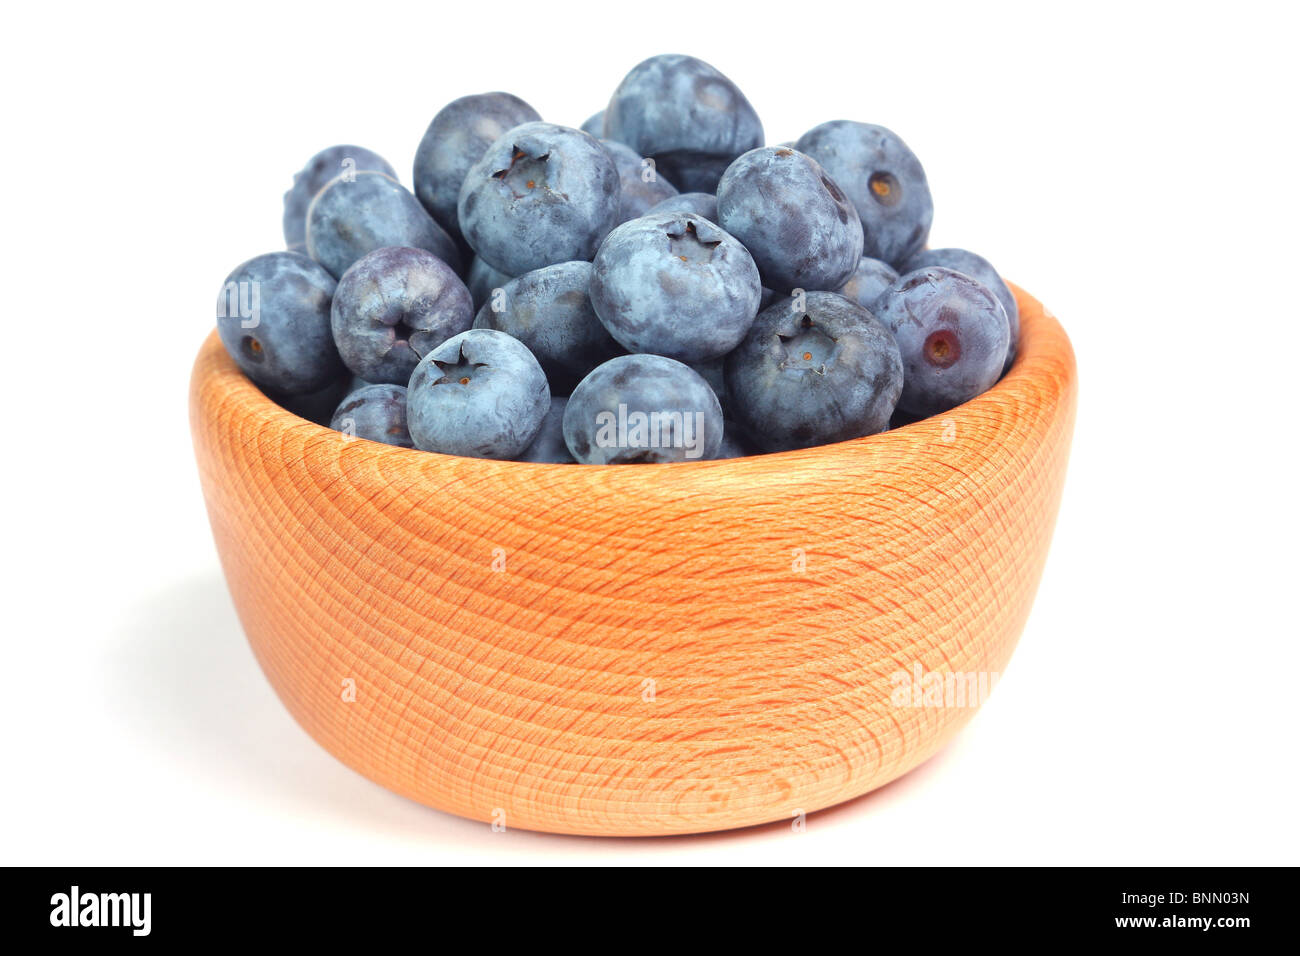 Blueberries in the bowl - Stock Image